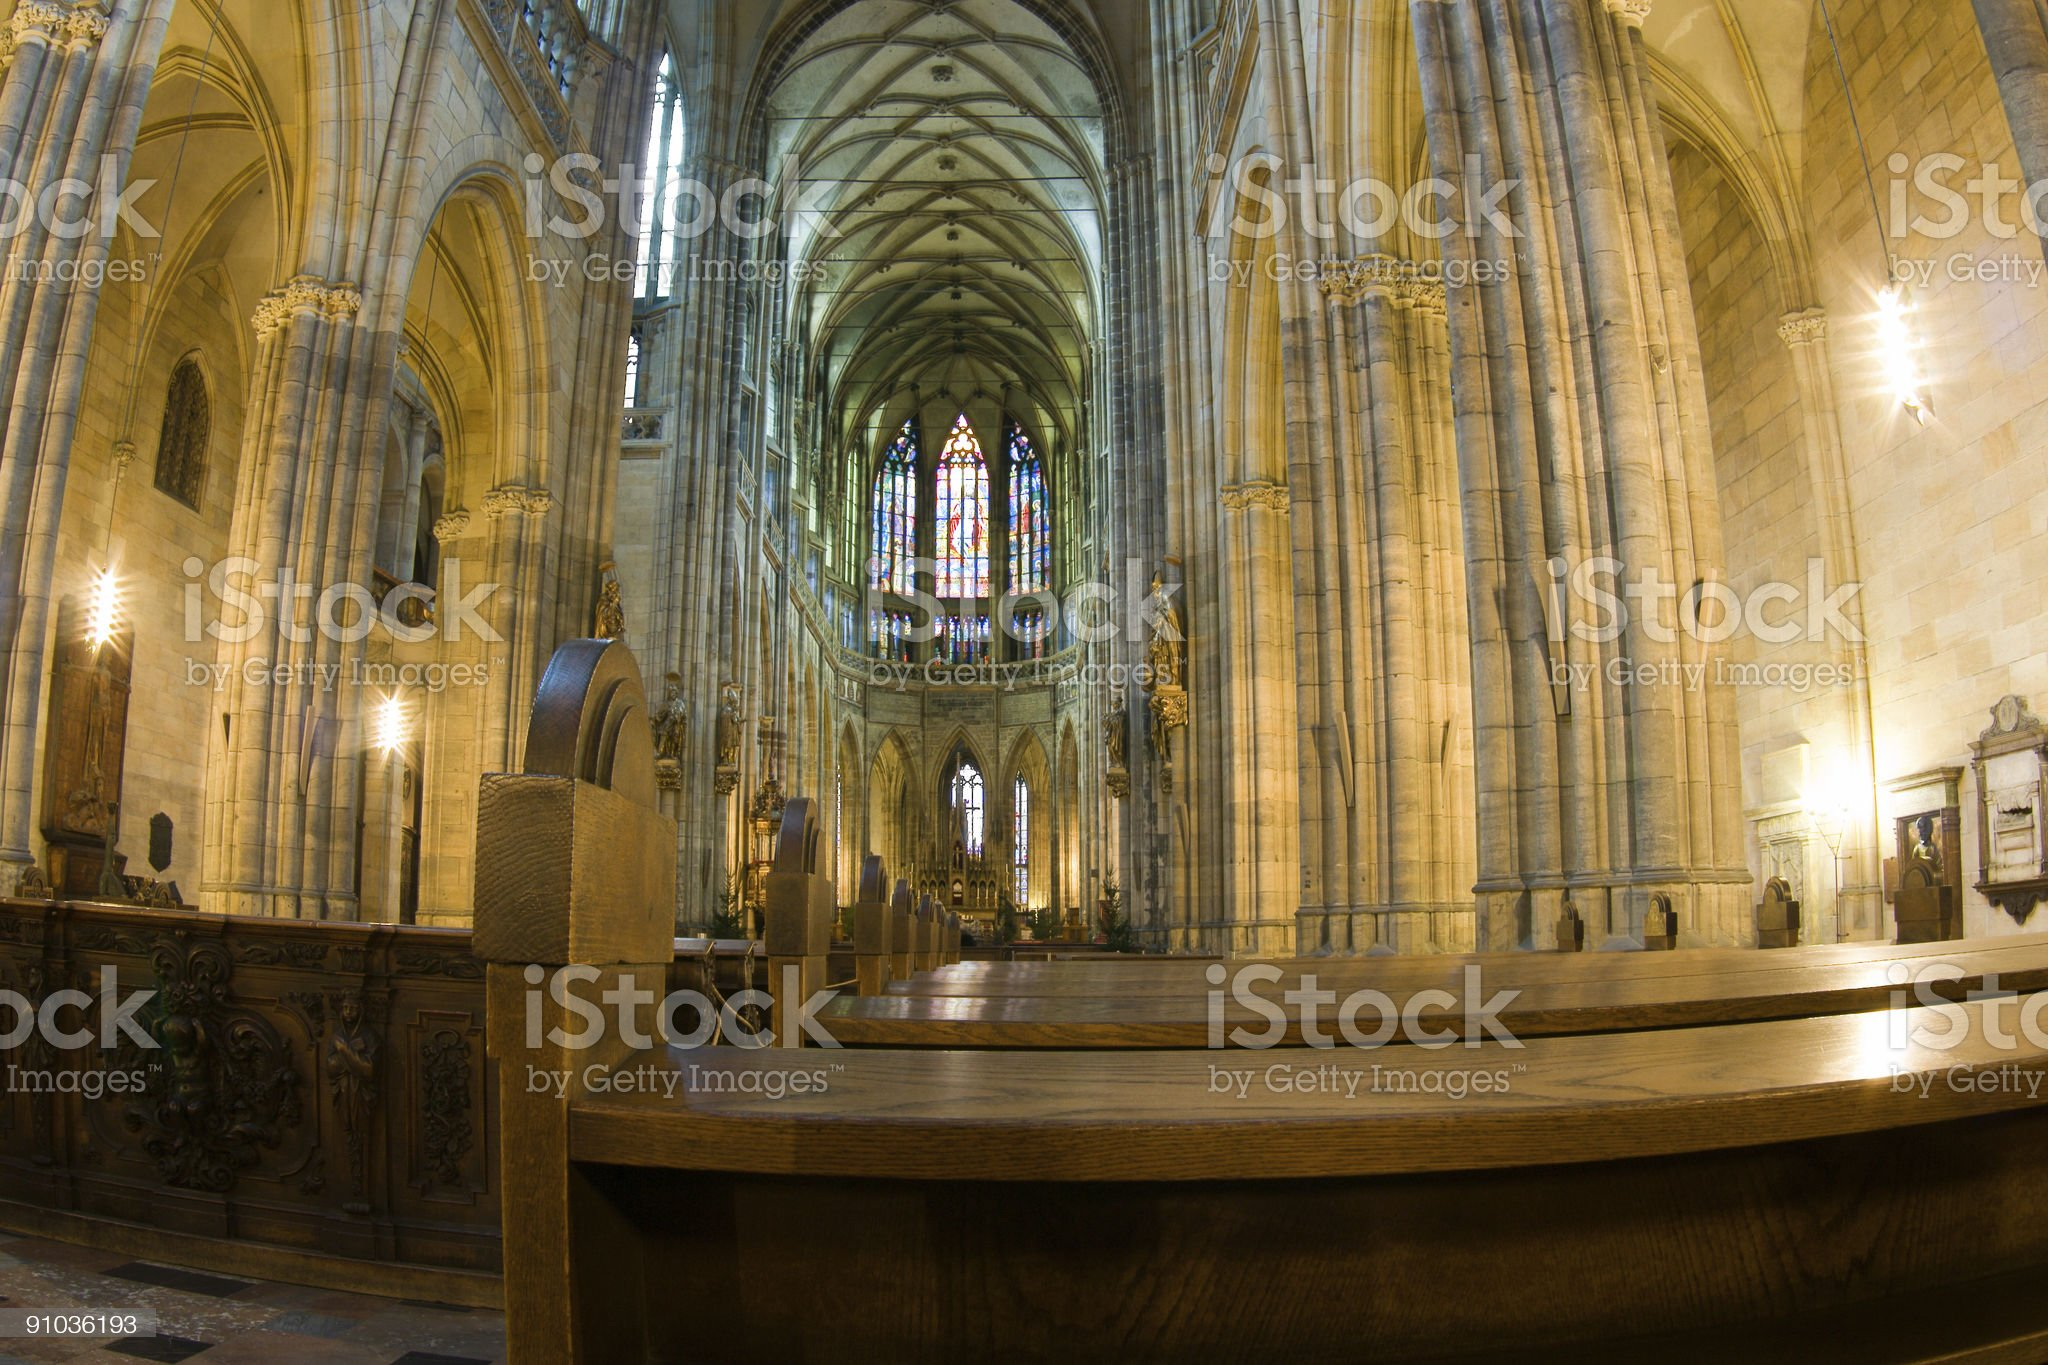 Interrior of St. Vitus Cathedral royalty-free stock photo